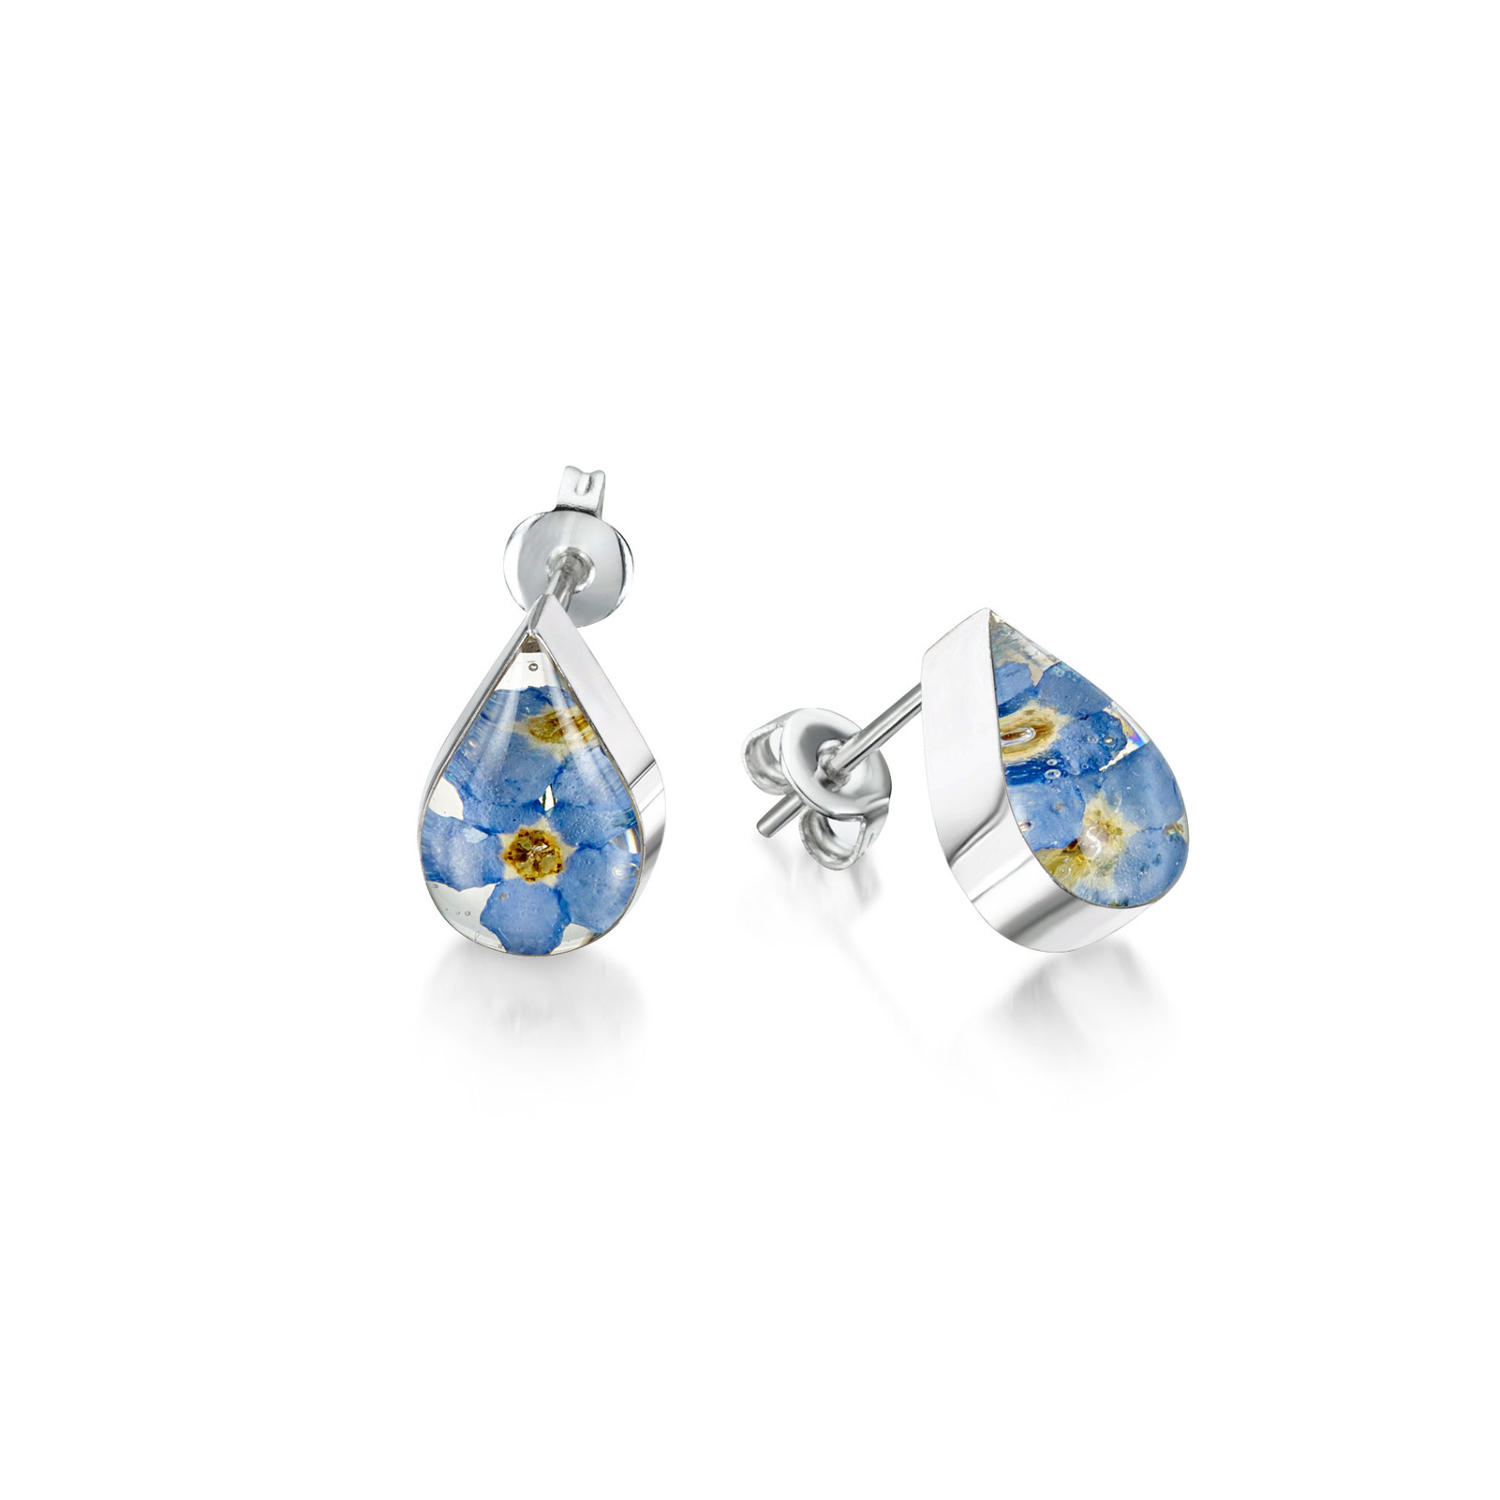 Forget-Me-Not Teardrop Stud Earrings